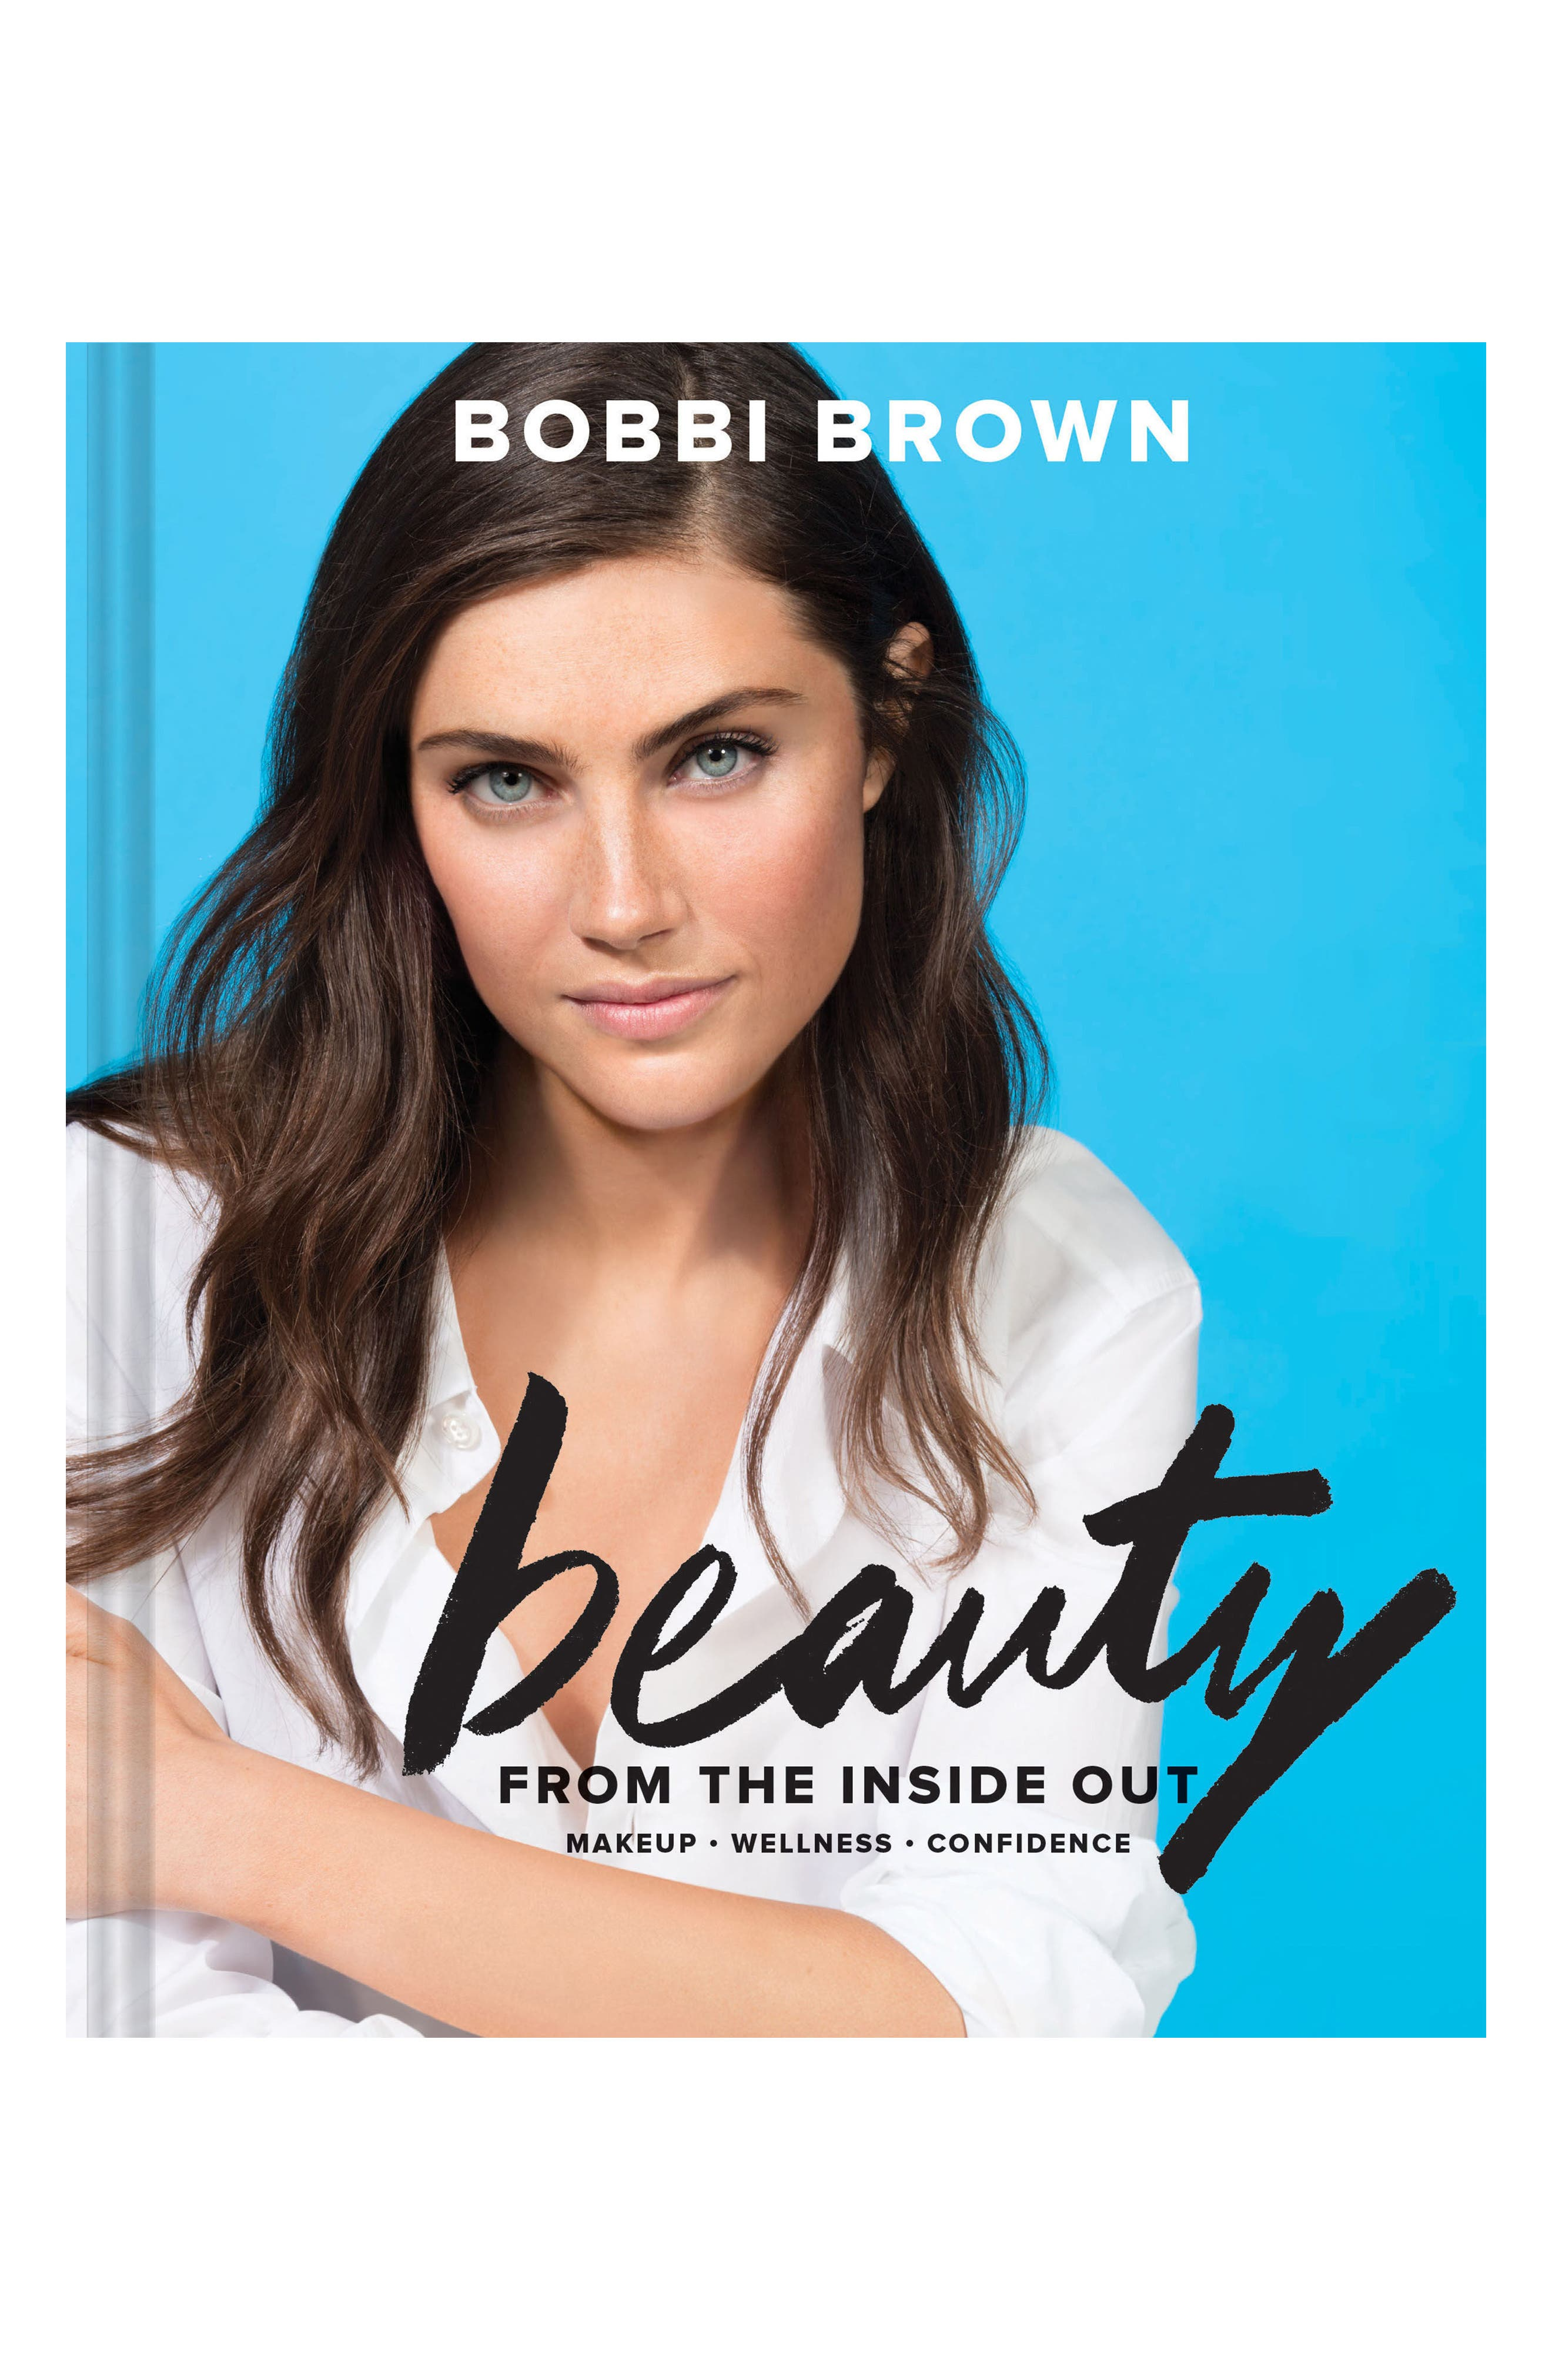 Alternate Image 1 Selected - Bobbi Brown's Beauty From the Inside Out Book